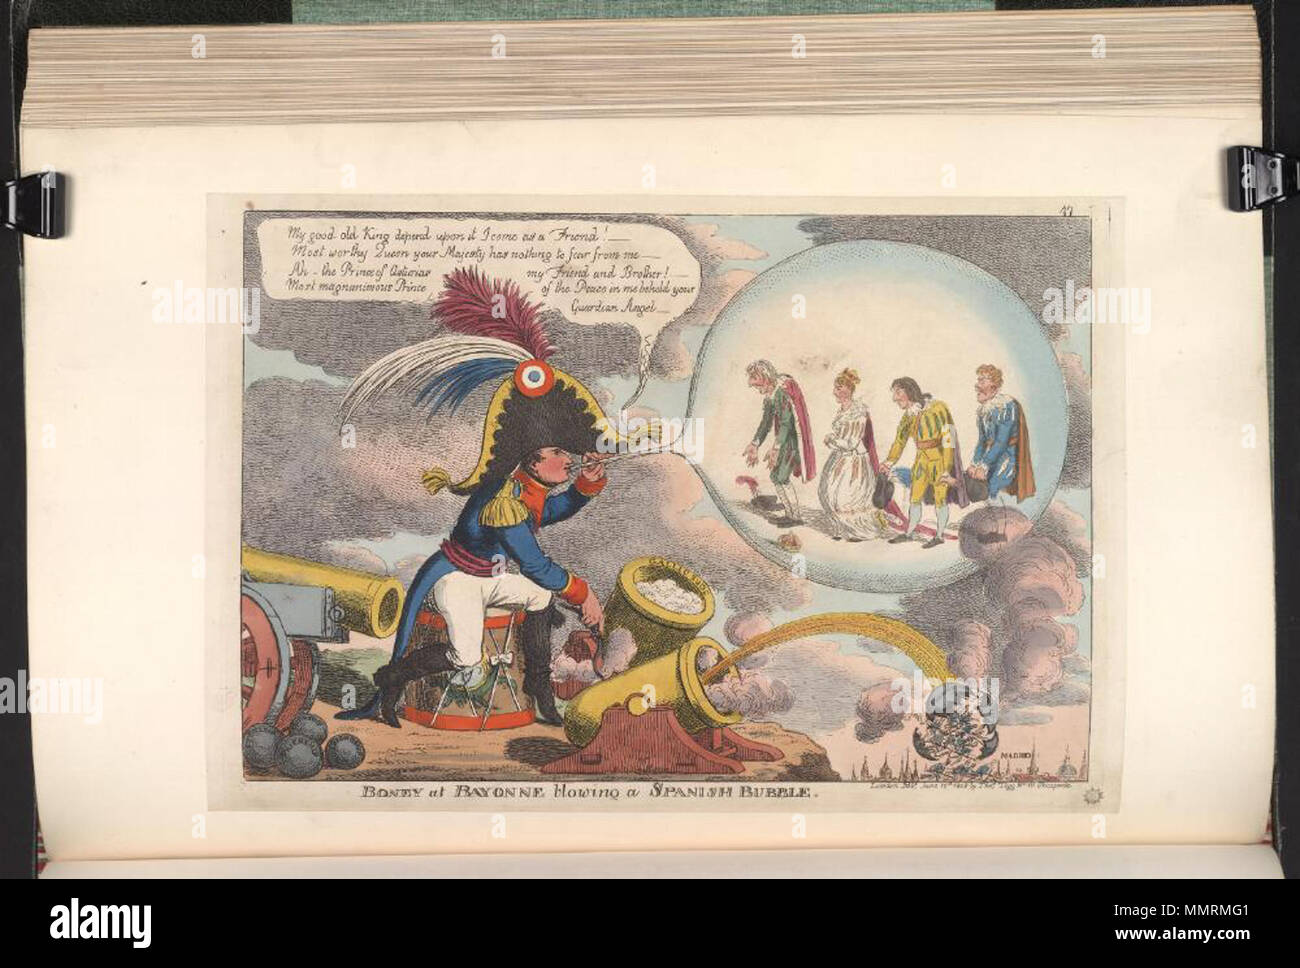 Satire On The Peninsular War British Political Cartoon